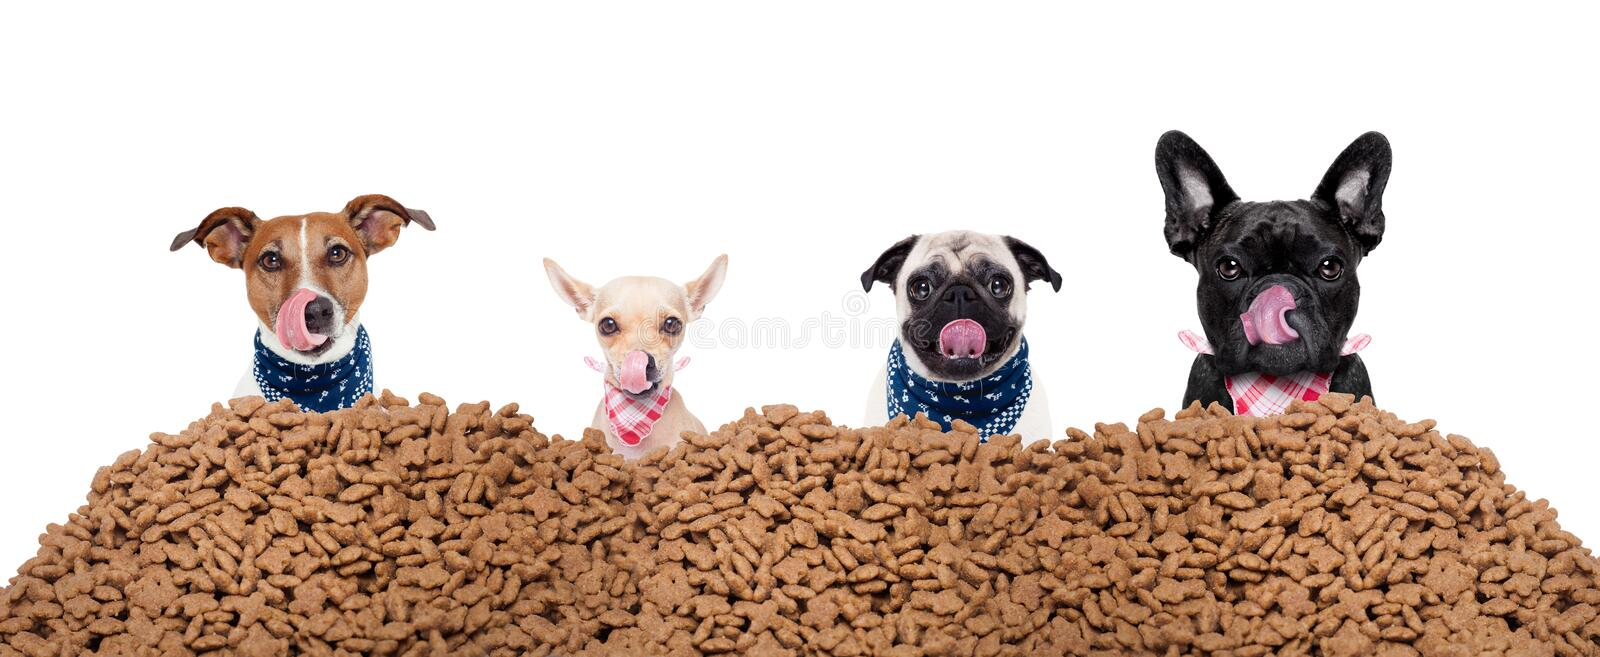 Group of dogs behind mound food royalty free stock photos